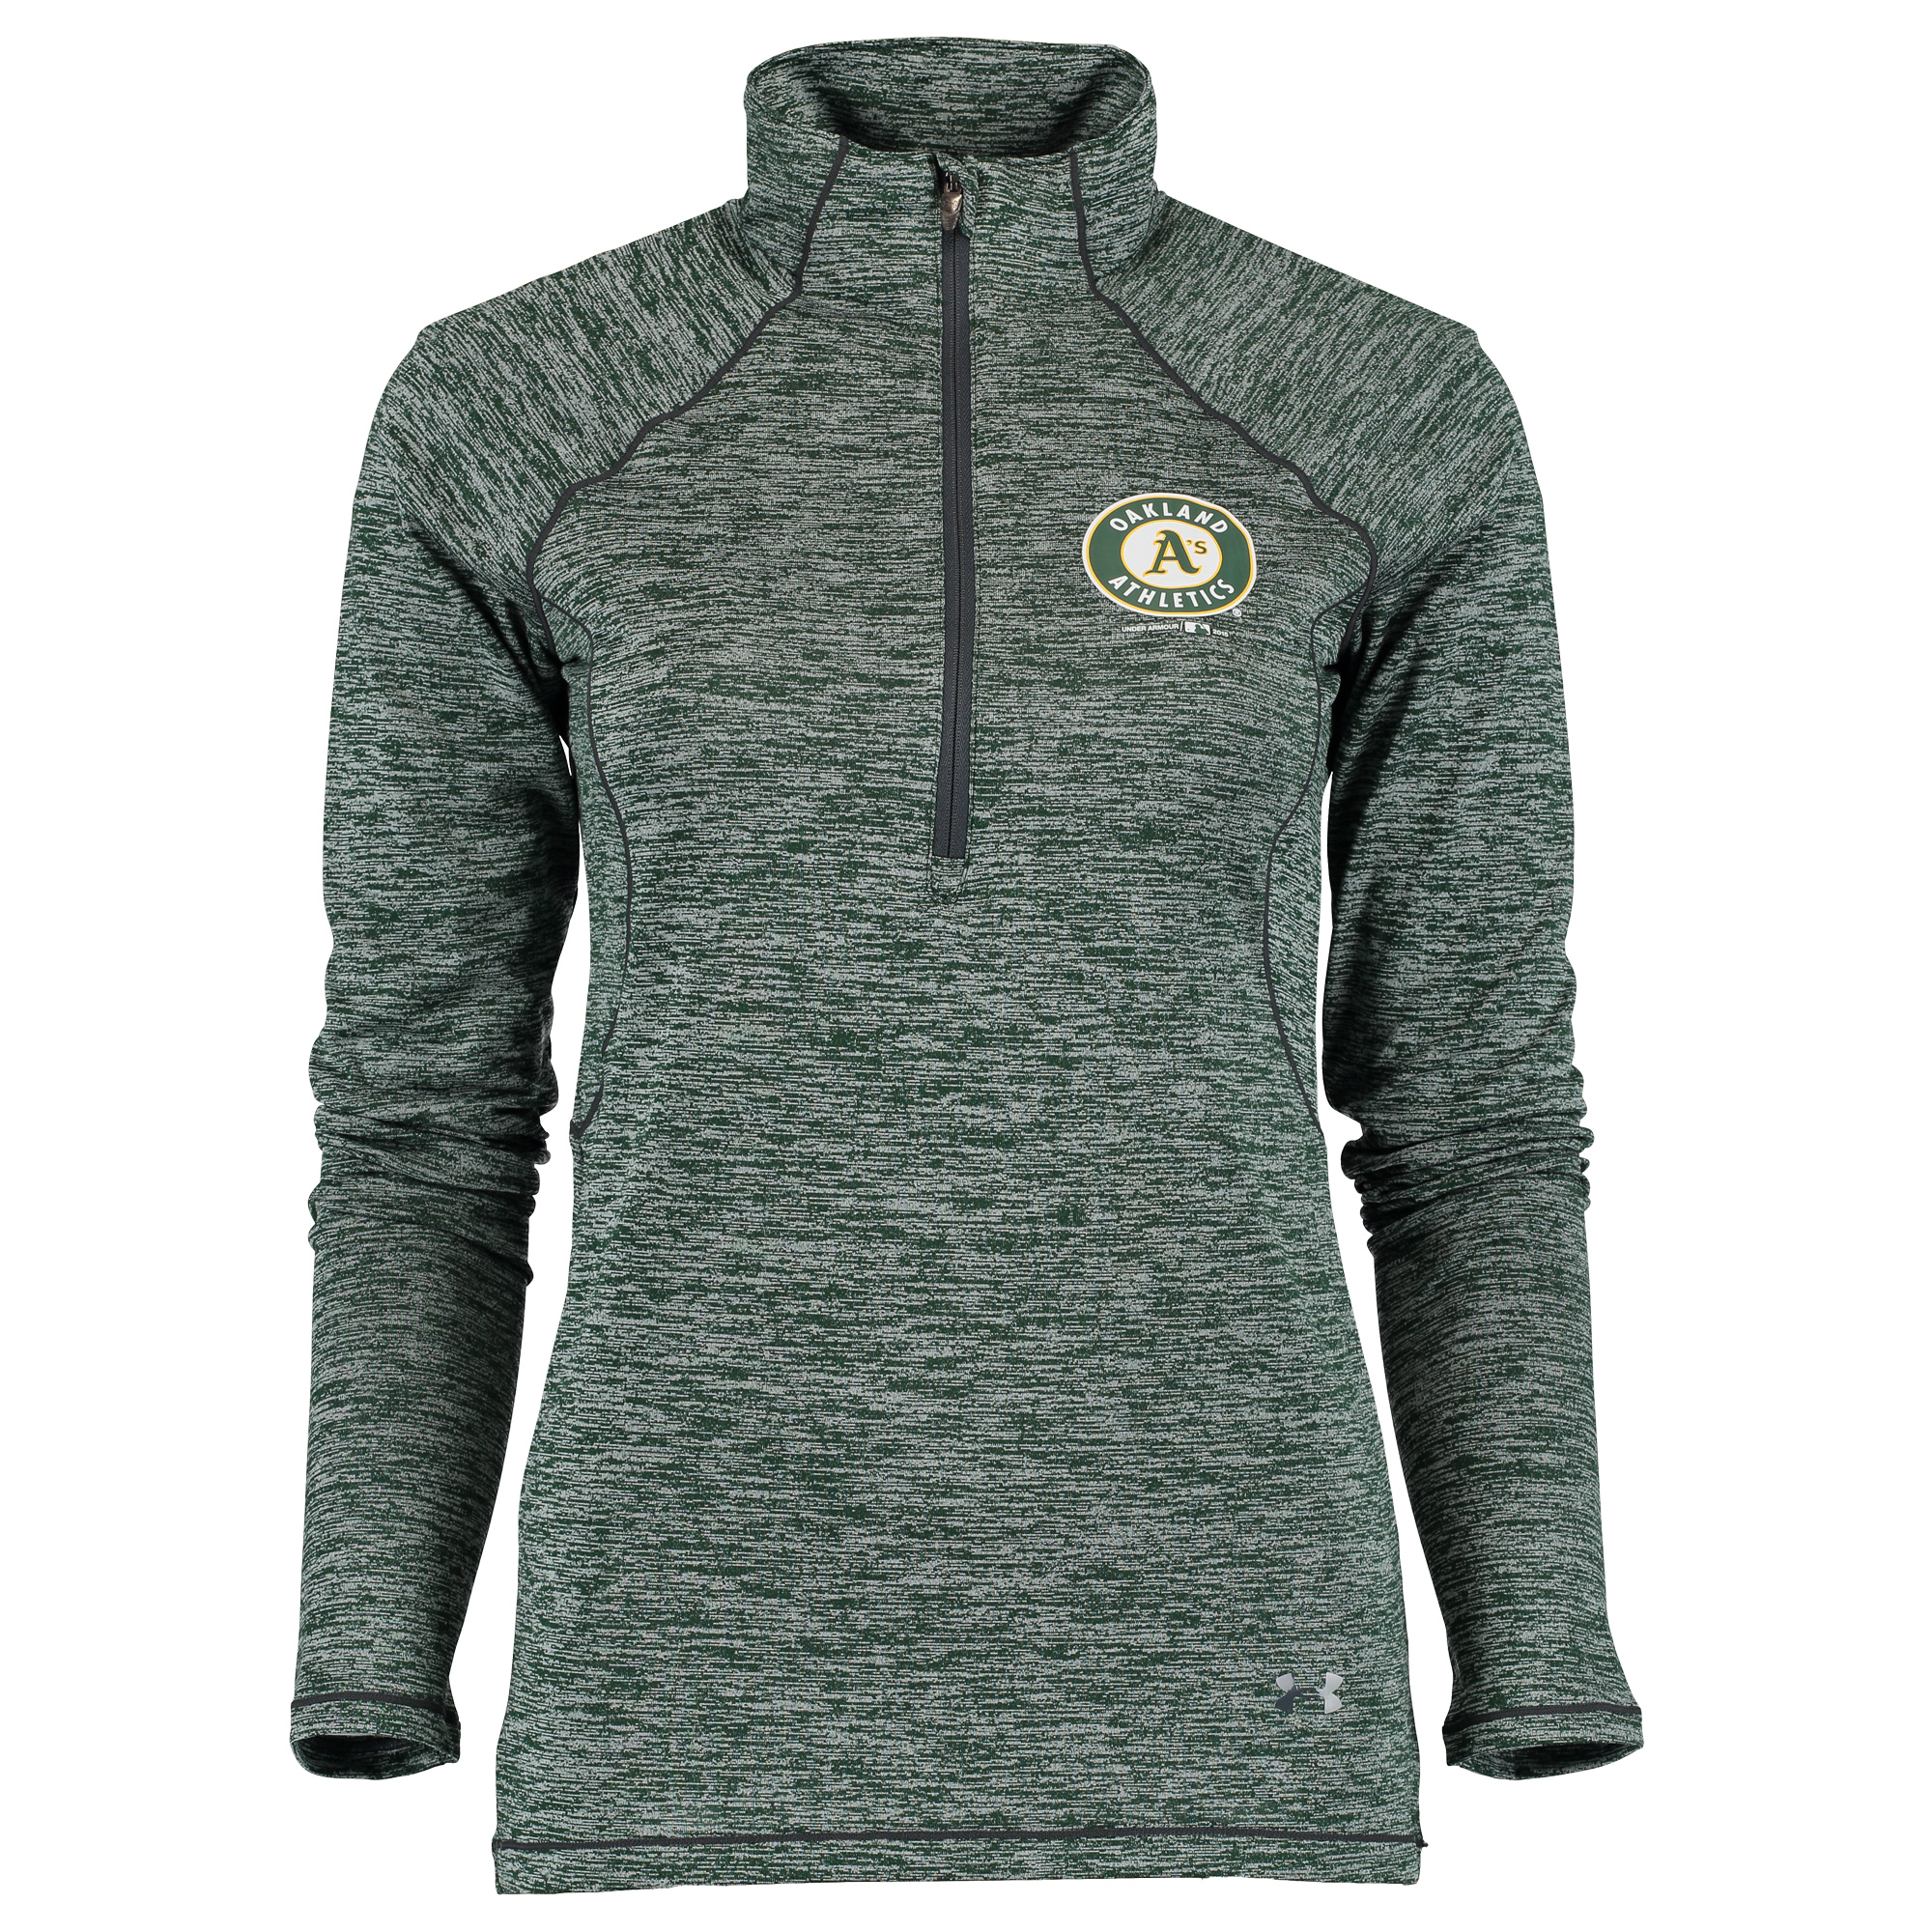 Oakland Athletics Under Armour Women's Twist Tech Performance Quarter-Zip Long Sleeve T-Shirt - Green/Gray